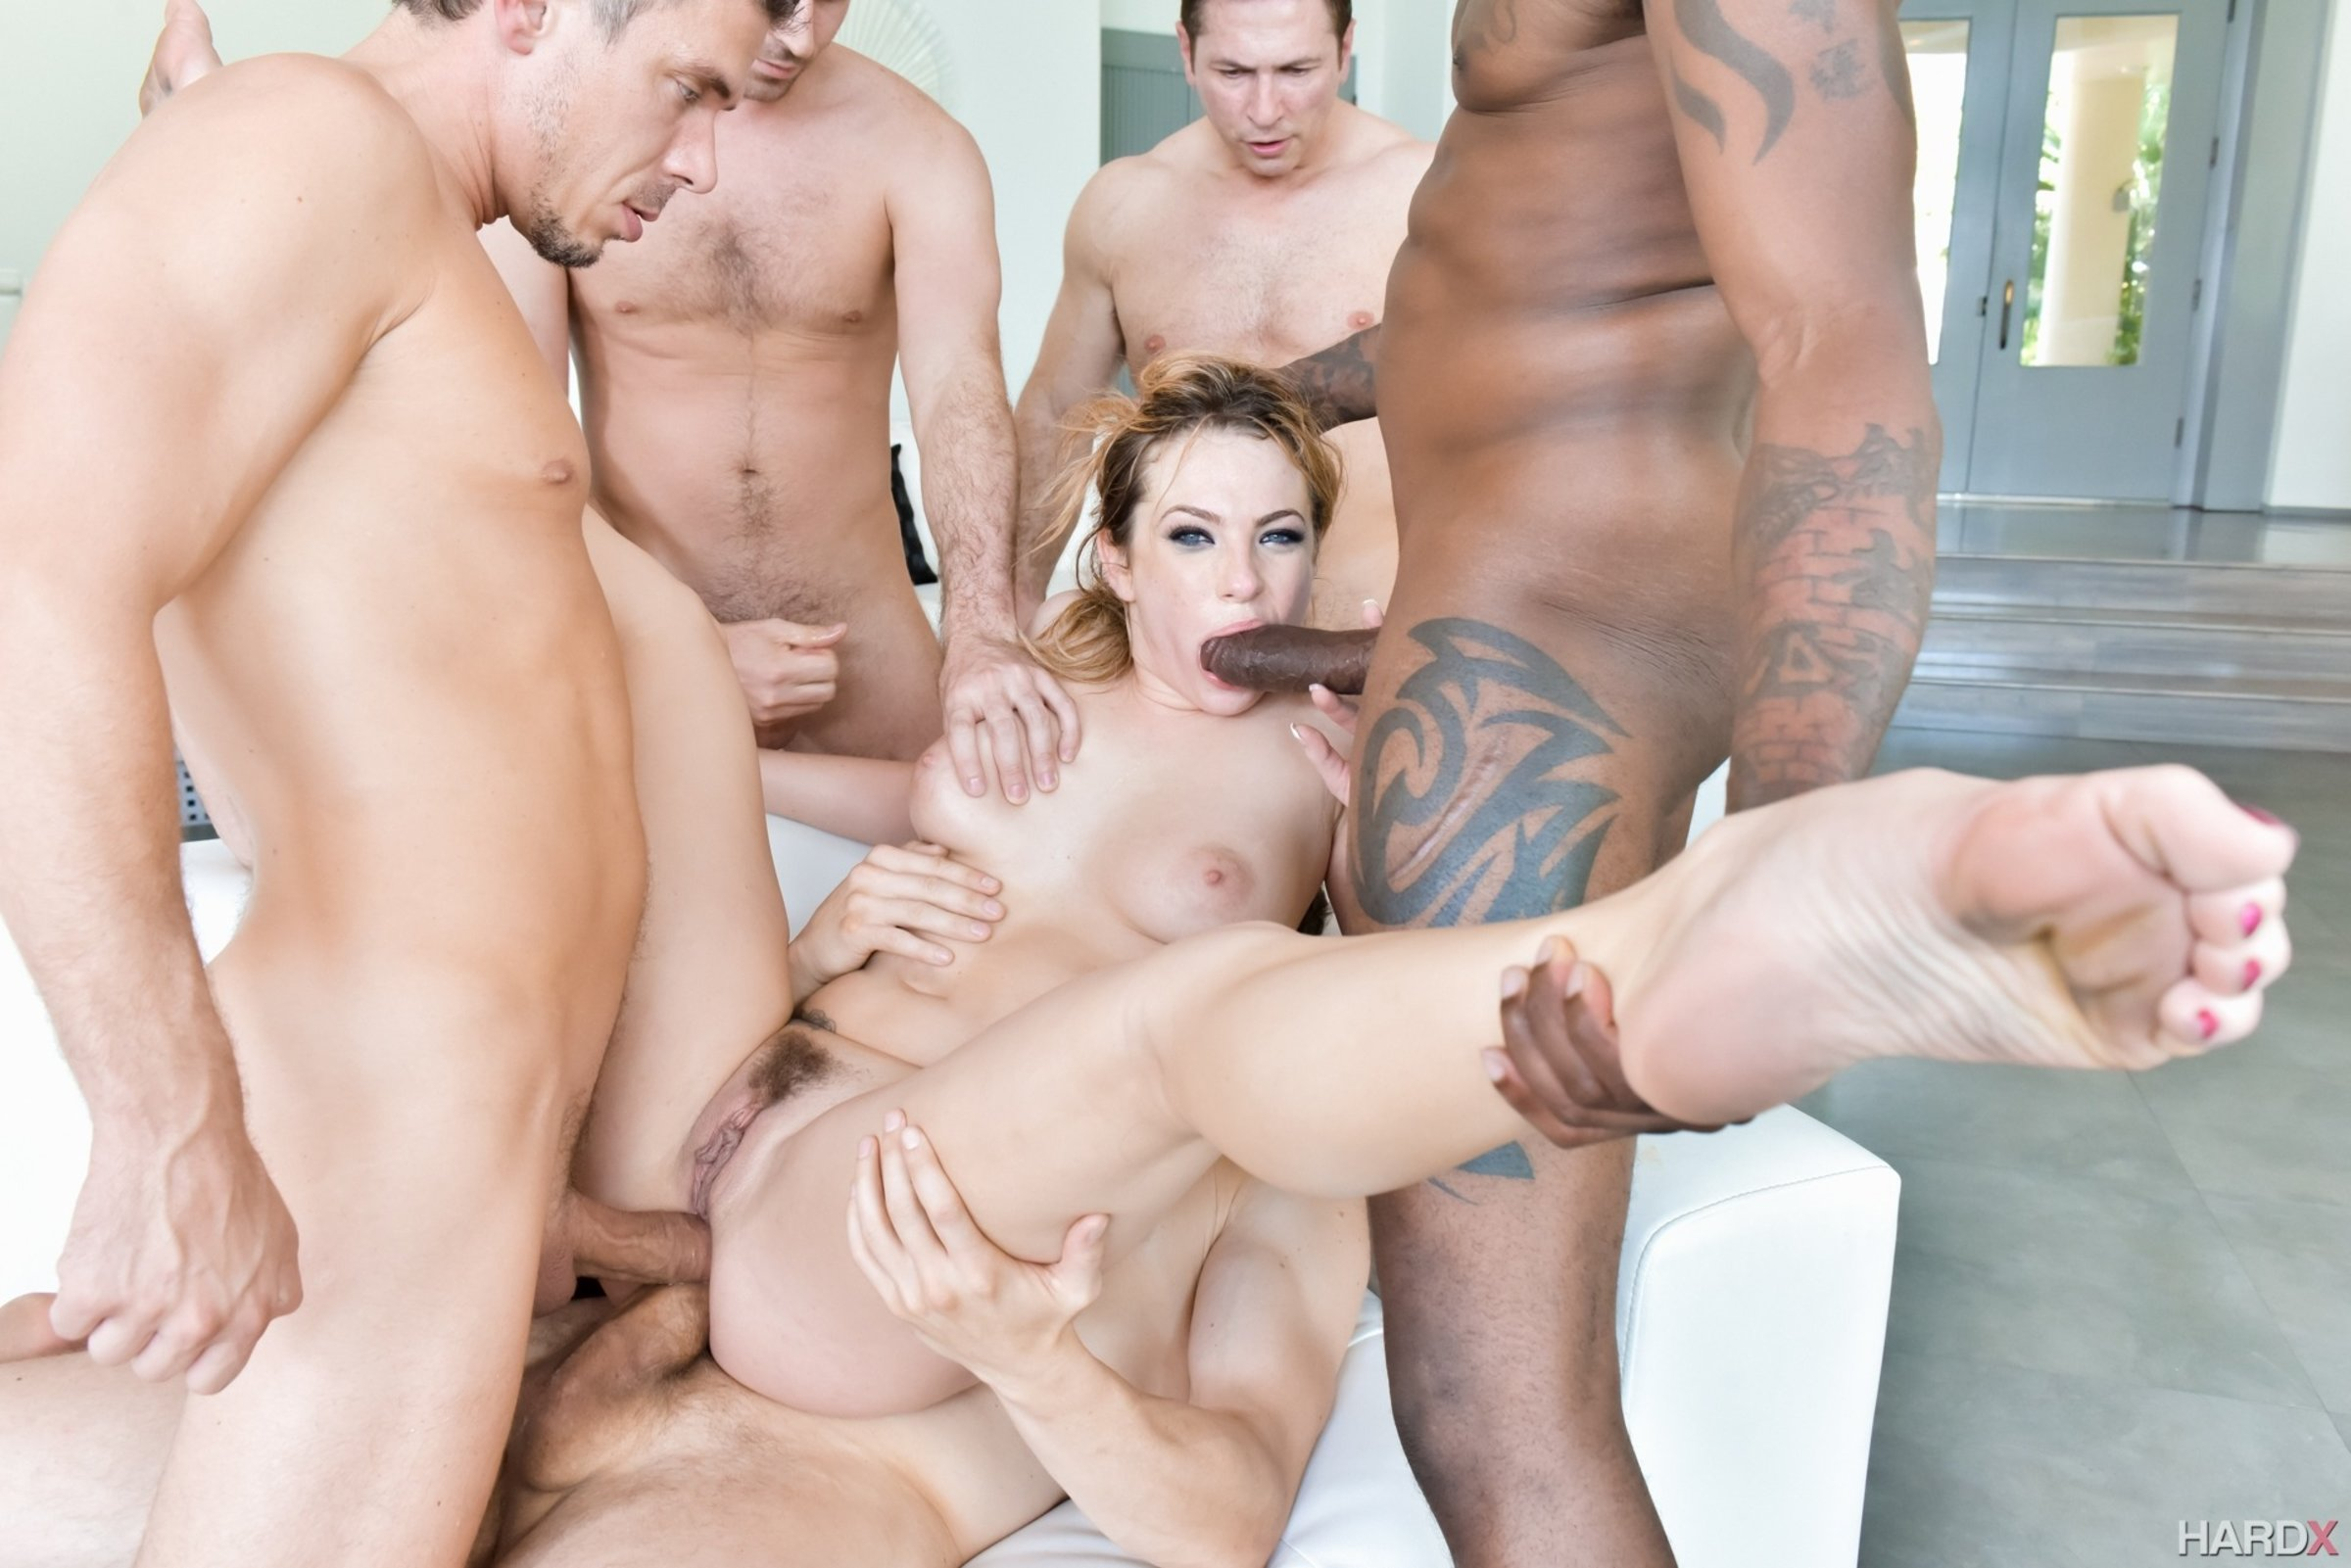 Group hard sex — 4